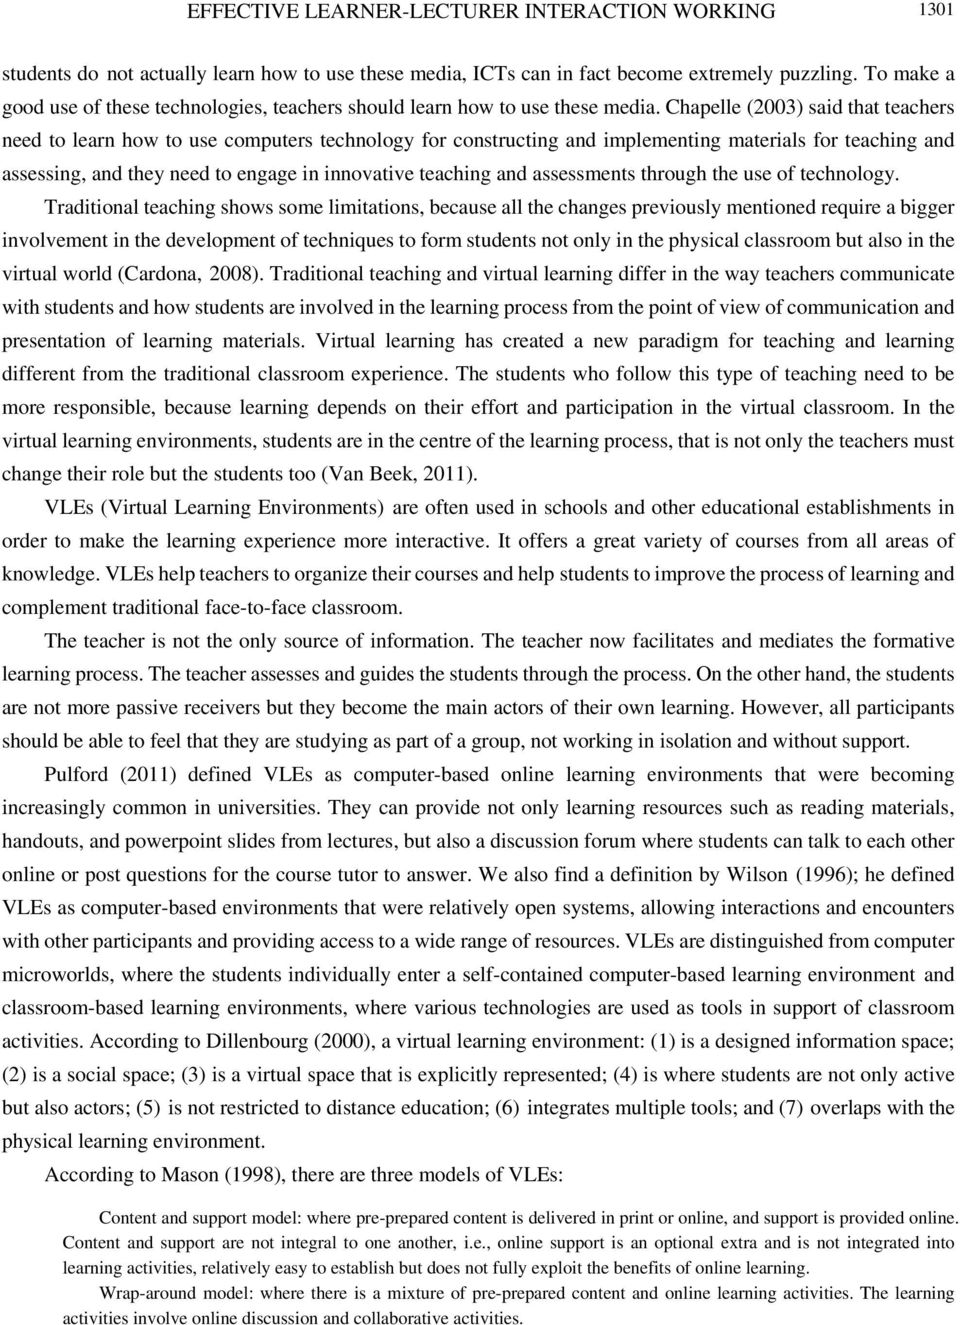 Chapelle (2003) said that teachers need to learn how to use computers technology for constructing and implementing materials for teaching and assessing, and they need to engage in innovative teaching